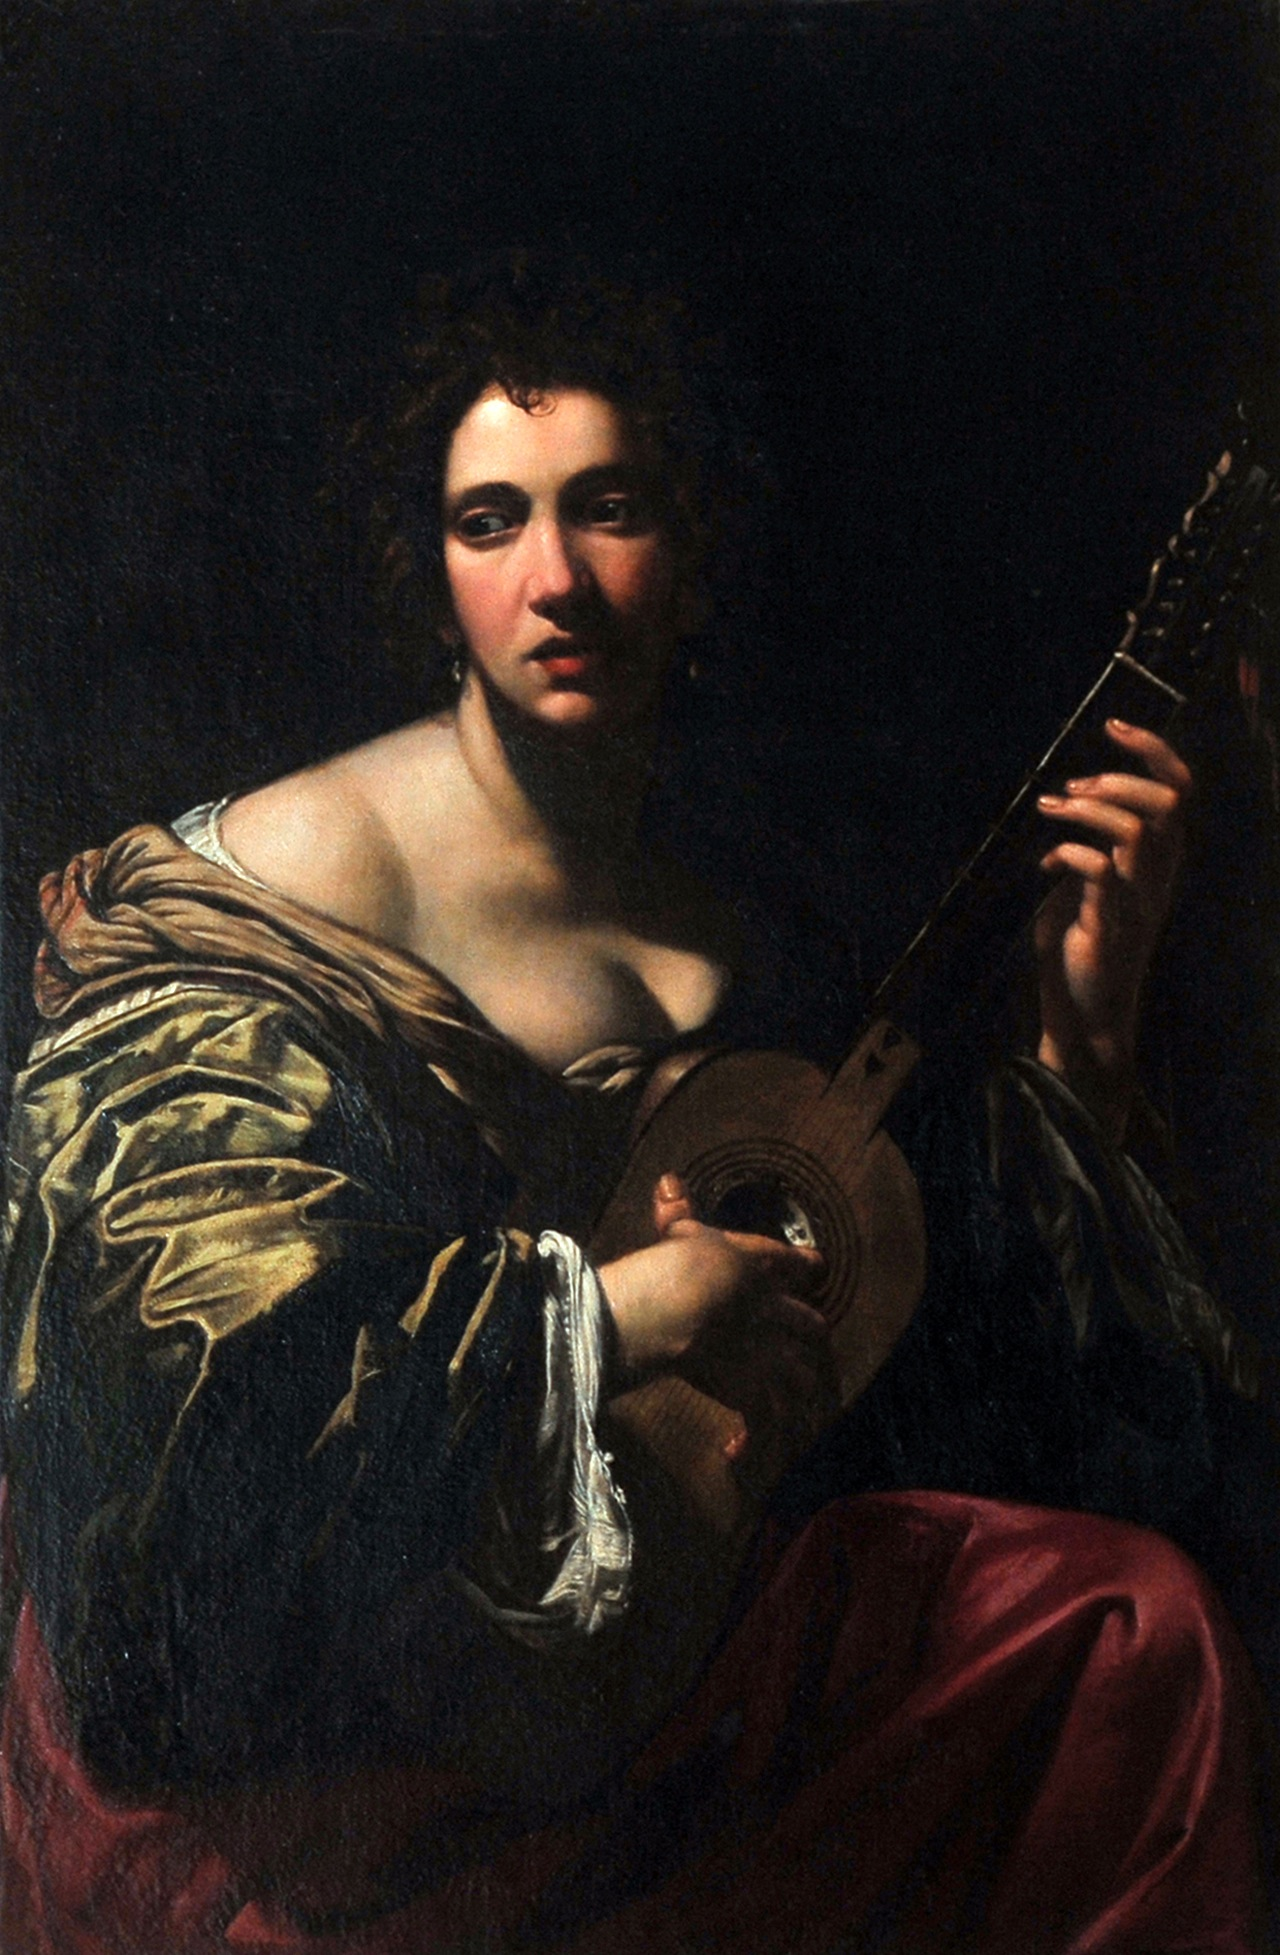 lost in the darkness of baroque paintings